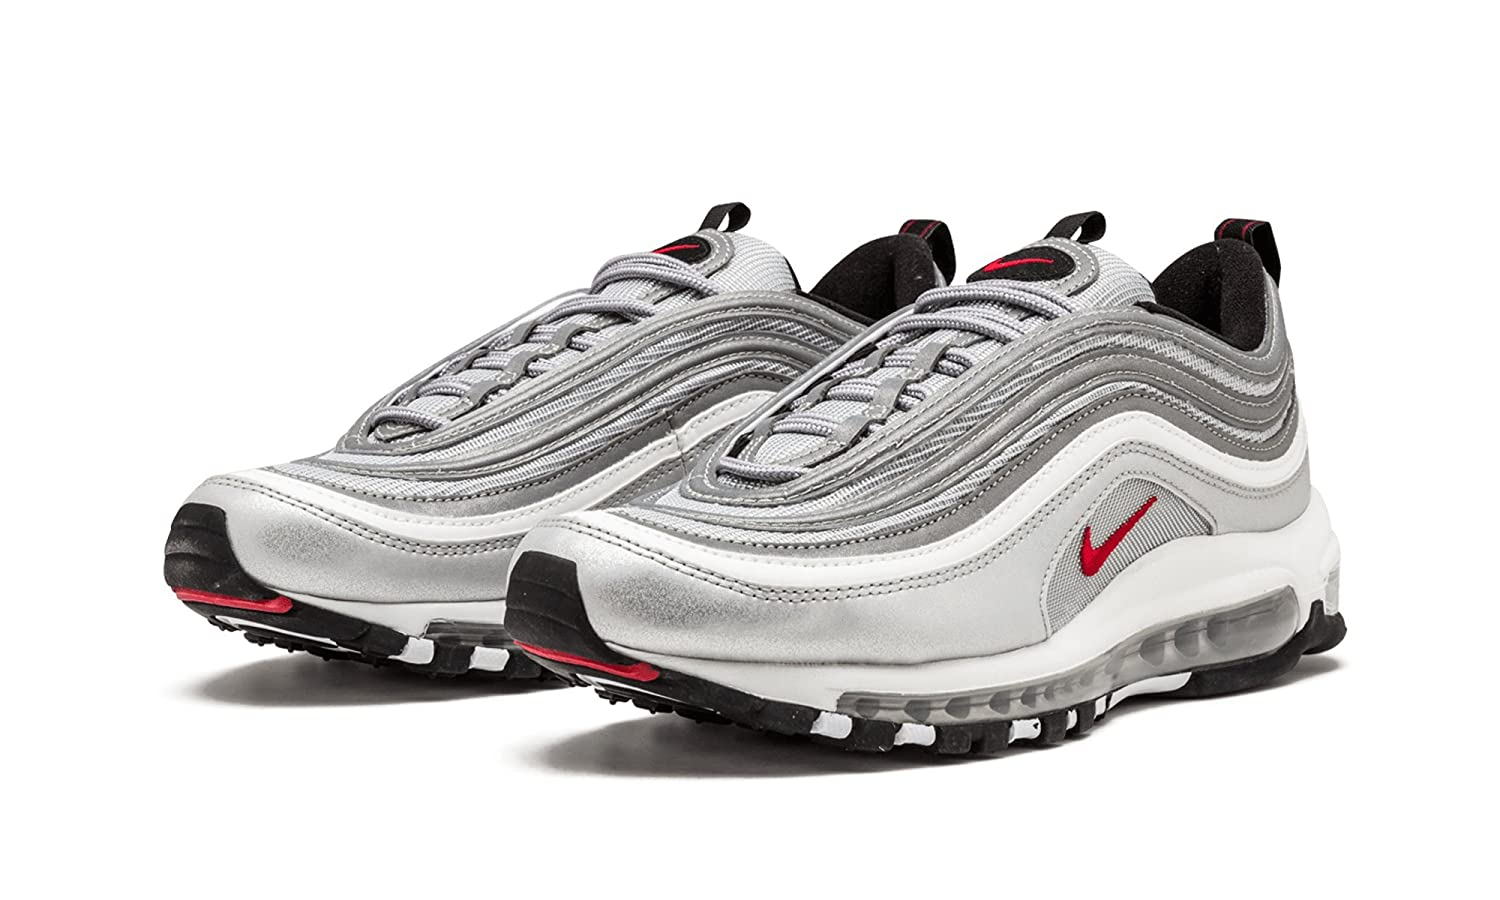 Nike Air Max 97 OG QS Silver Bullet - 884421 001  Amazon.co.uk  Shoes   Bags ae23bcbd0